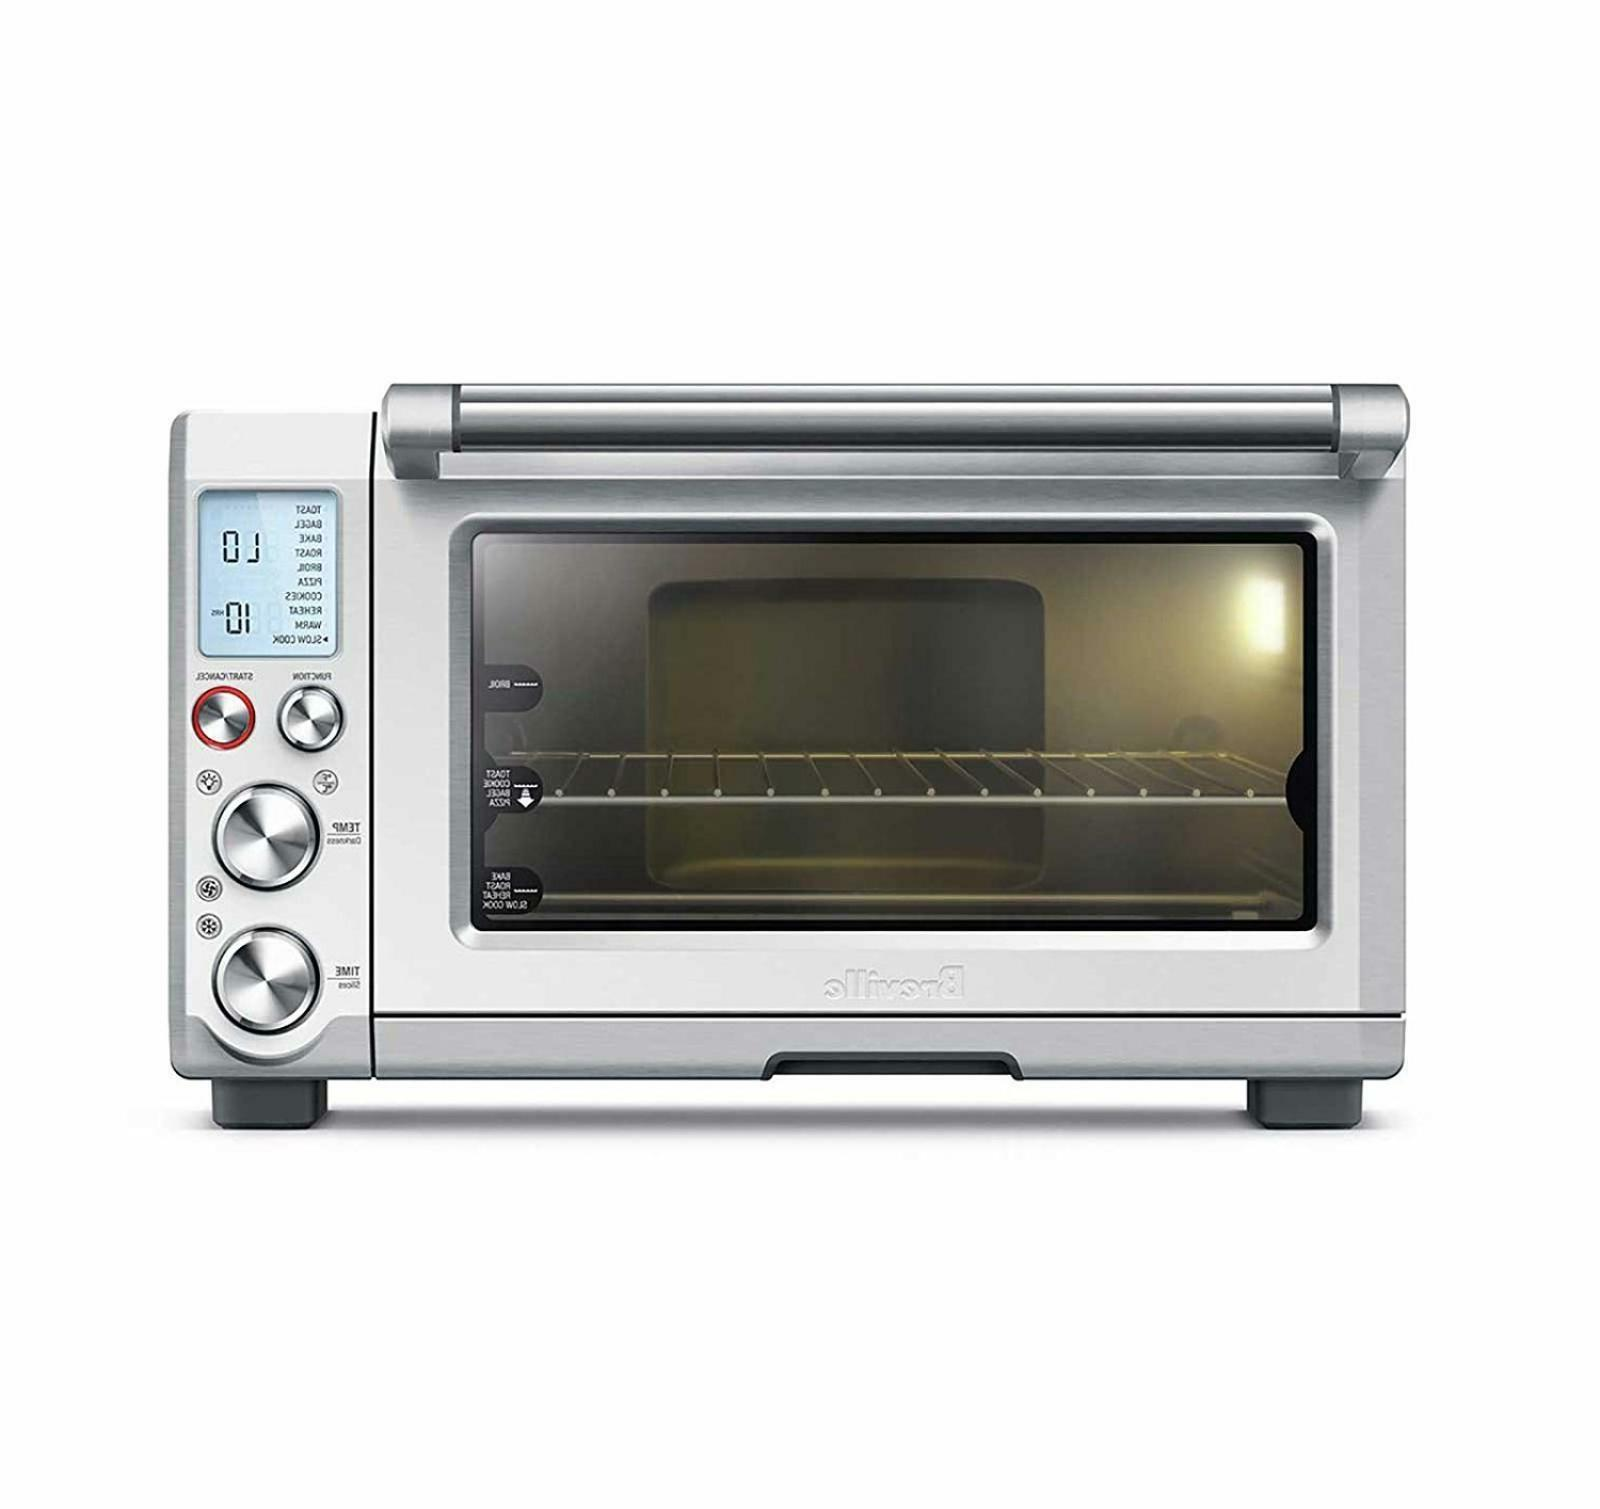 Breville  Smart Oven Pro 1800 W Convection Toaster Oven with